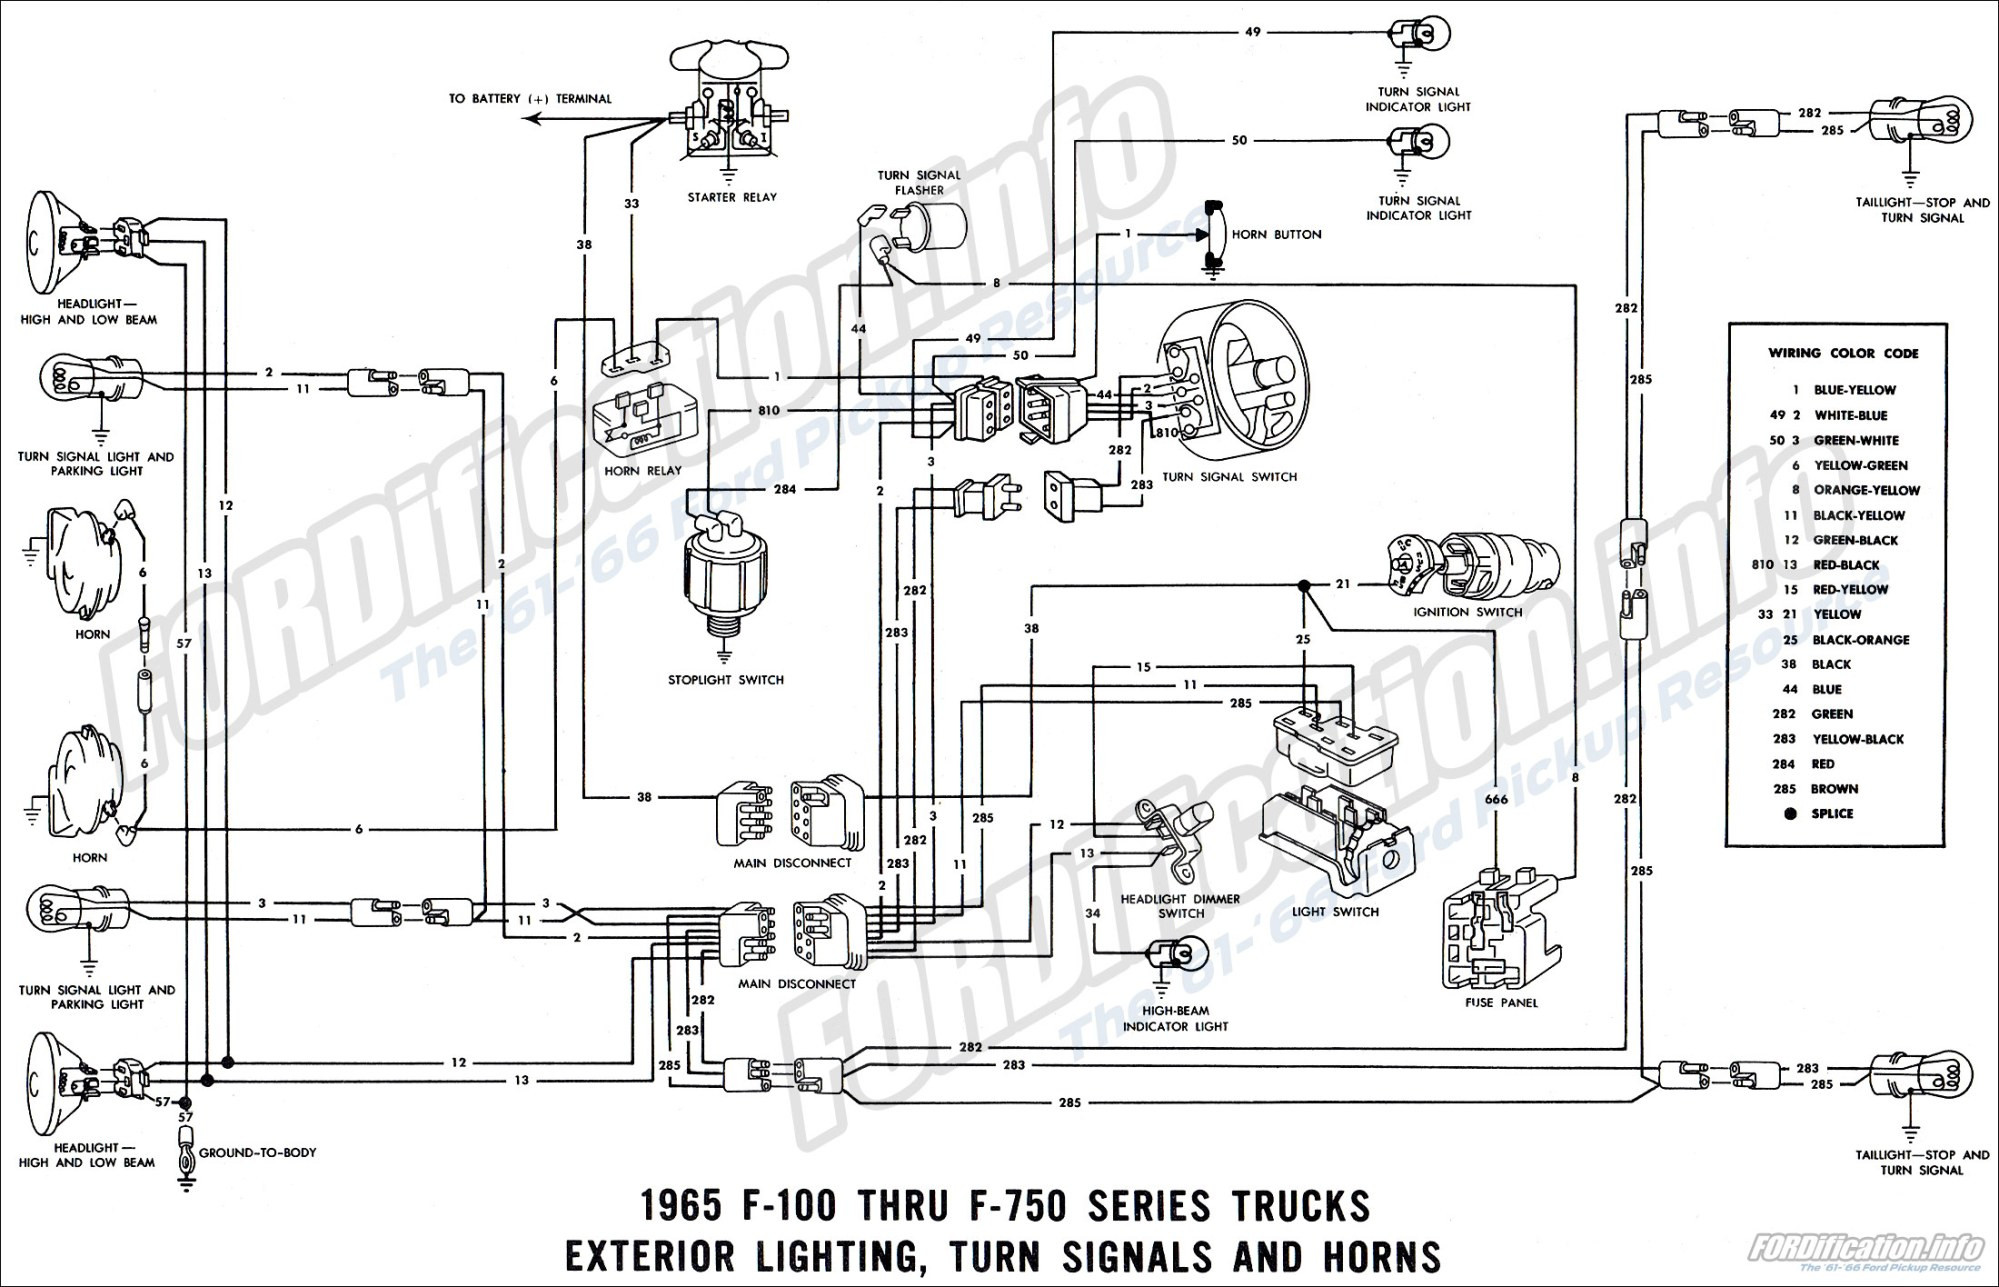 hight resolution of 65 ford f100 wiring diagram wiring diagram list 1965 ford truck wiring diagrams fordification info the